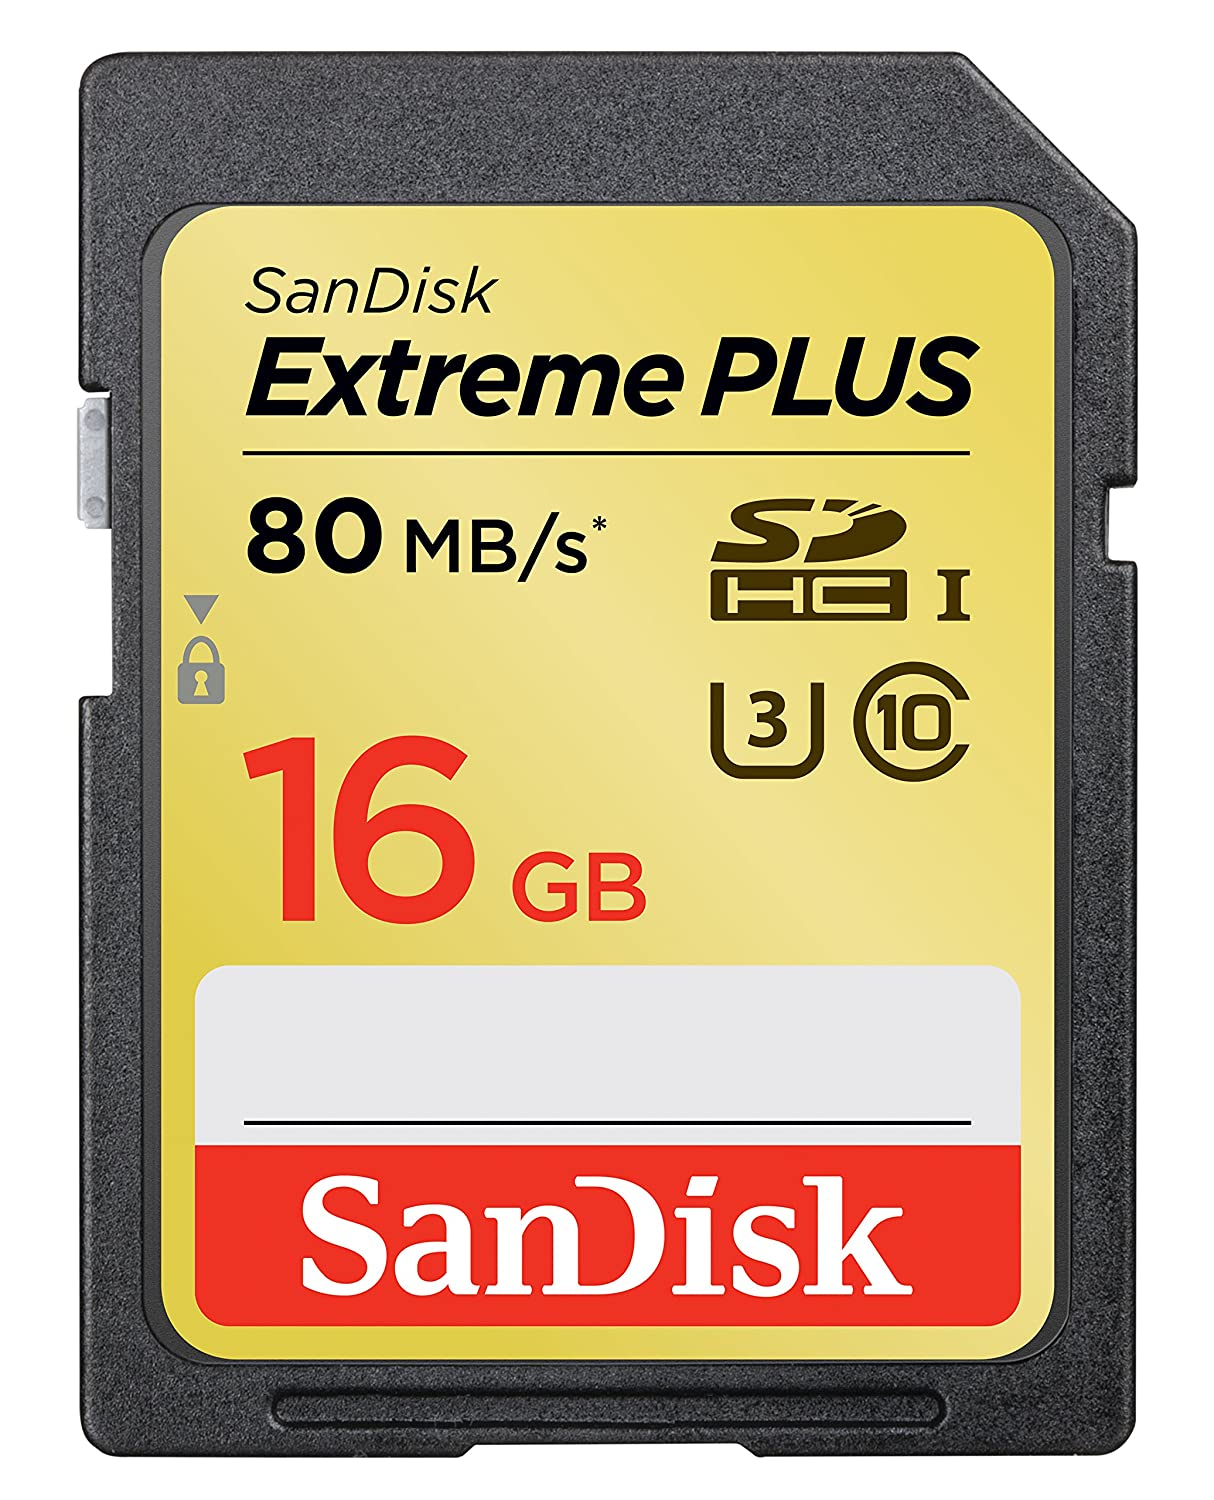 SanDisk Extreme Plus 16GB UHS-1/U3 SDHC Memory Card Up To 80MB/s- SDSDXS-016G-X46 (Label May Change)